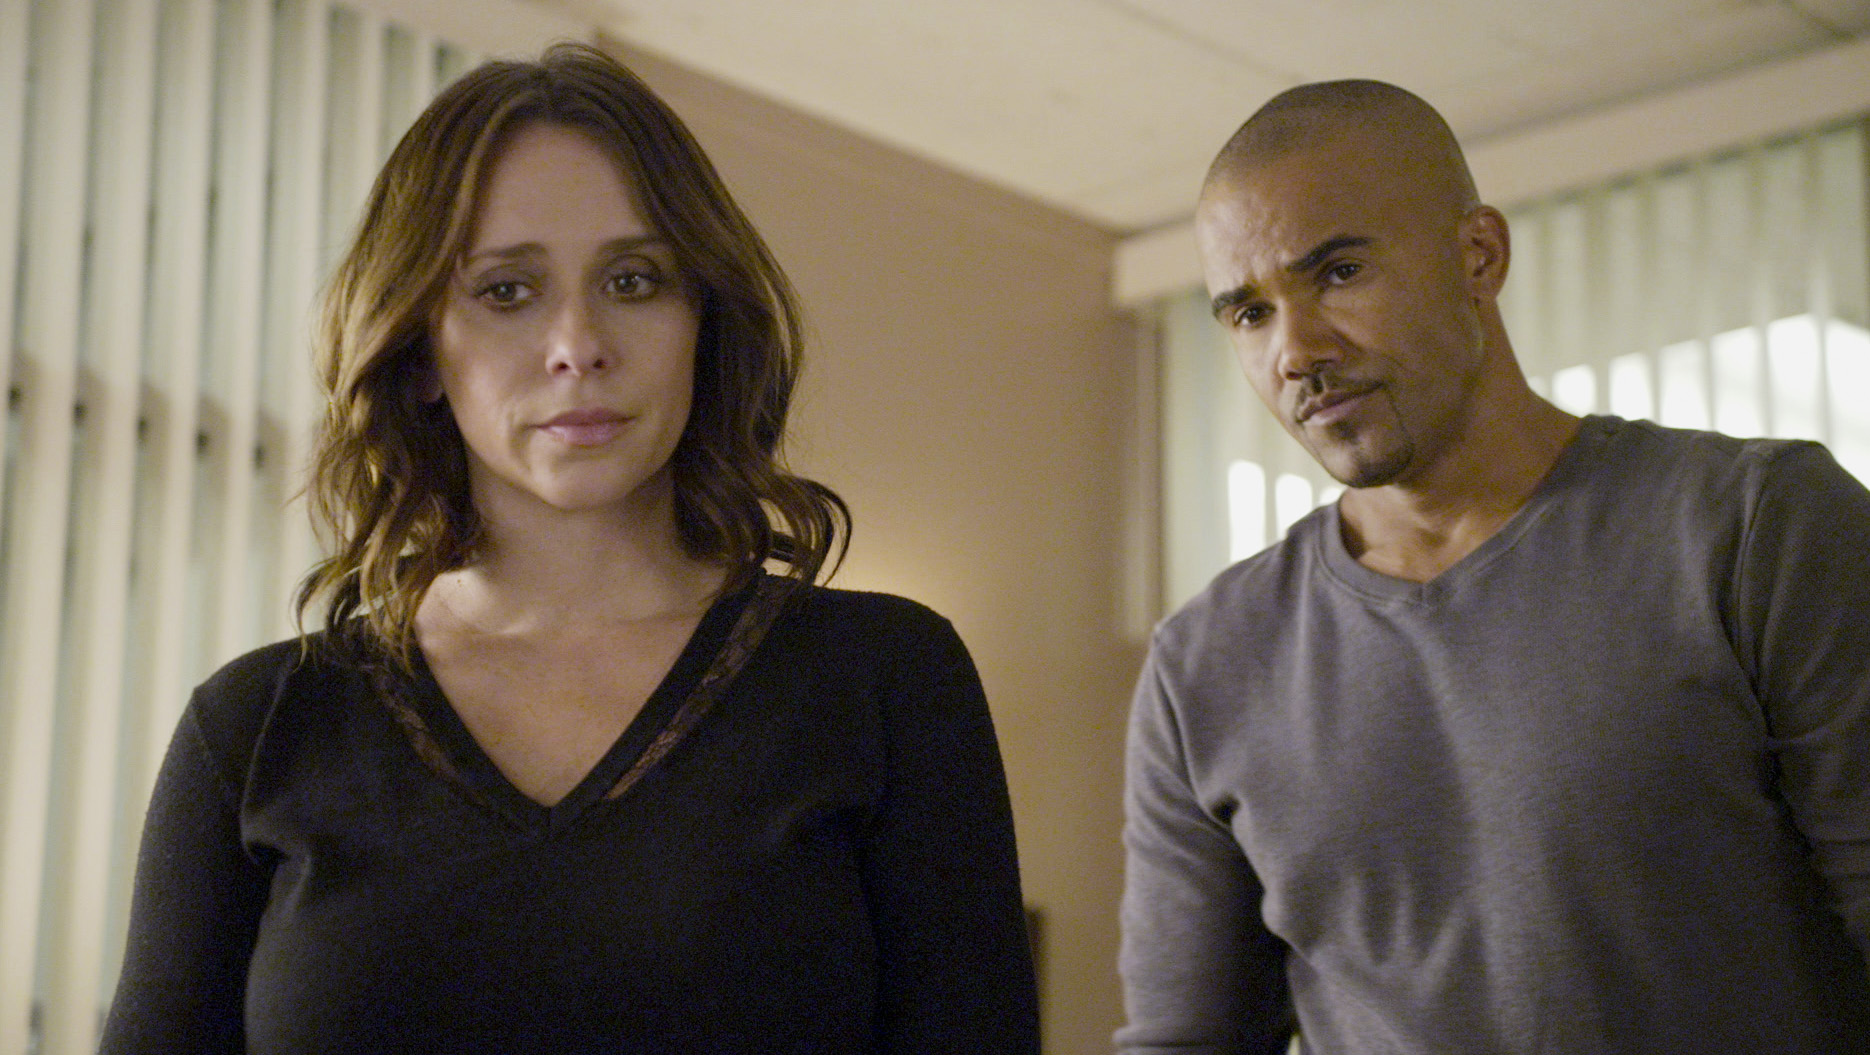 Jennifer Love Hewitt as Kate Callahan and Shemar Moore as Derek Morgan in the  Amelia Porter  episode of Criminal Minds on Dec. 10, 2014.